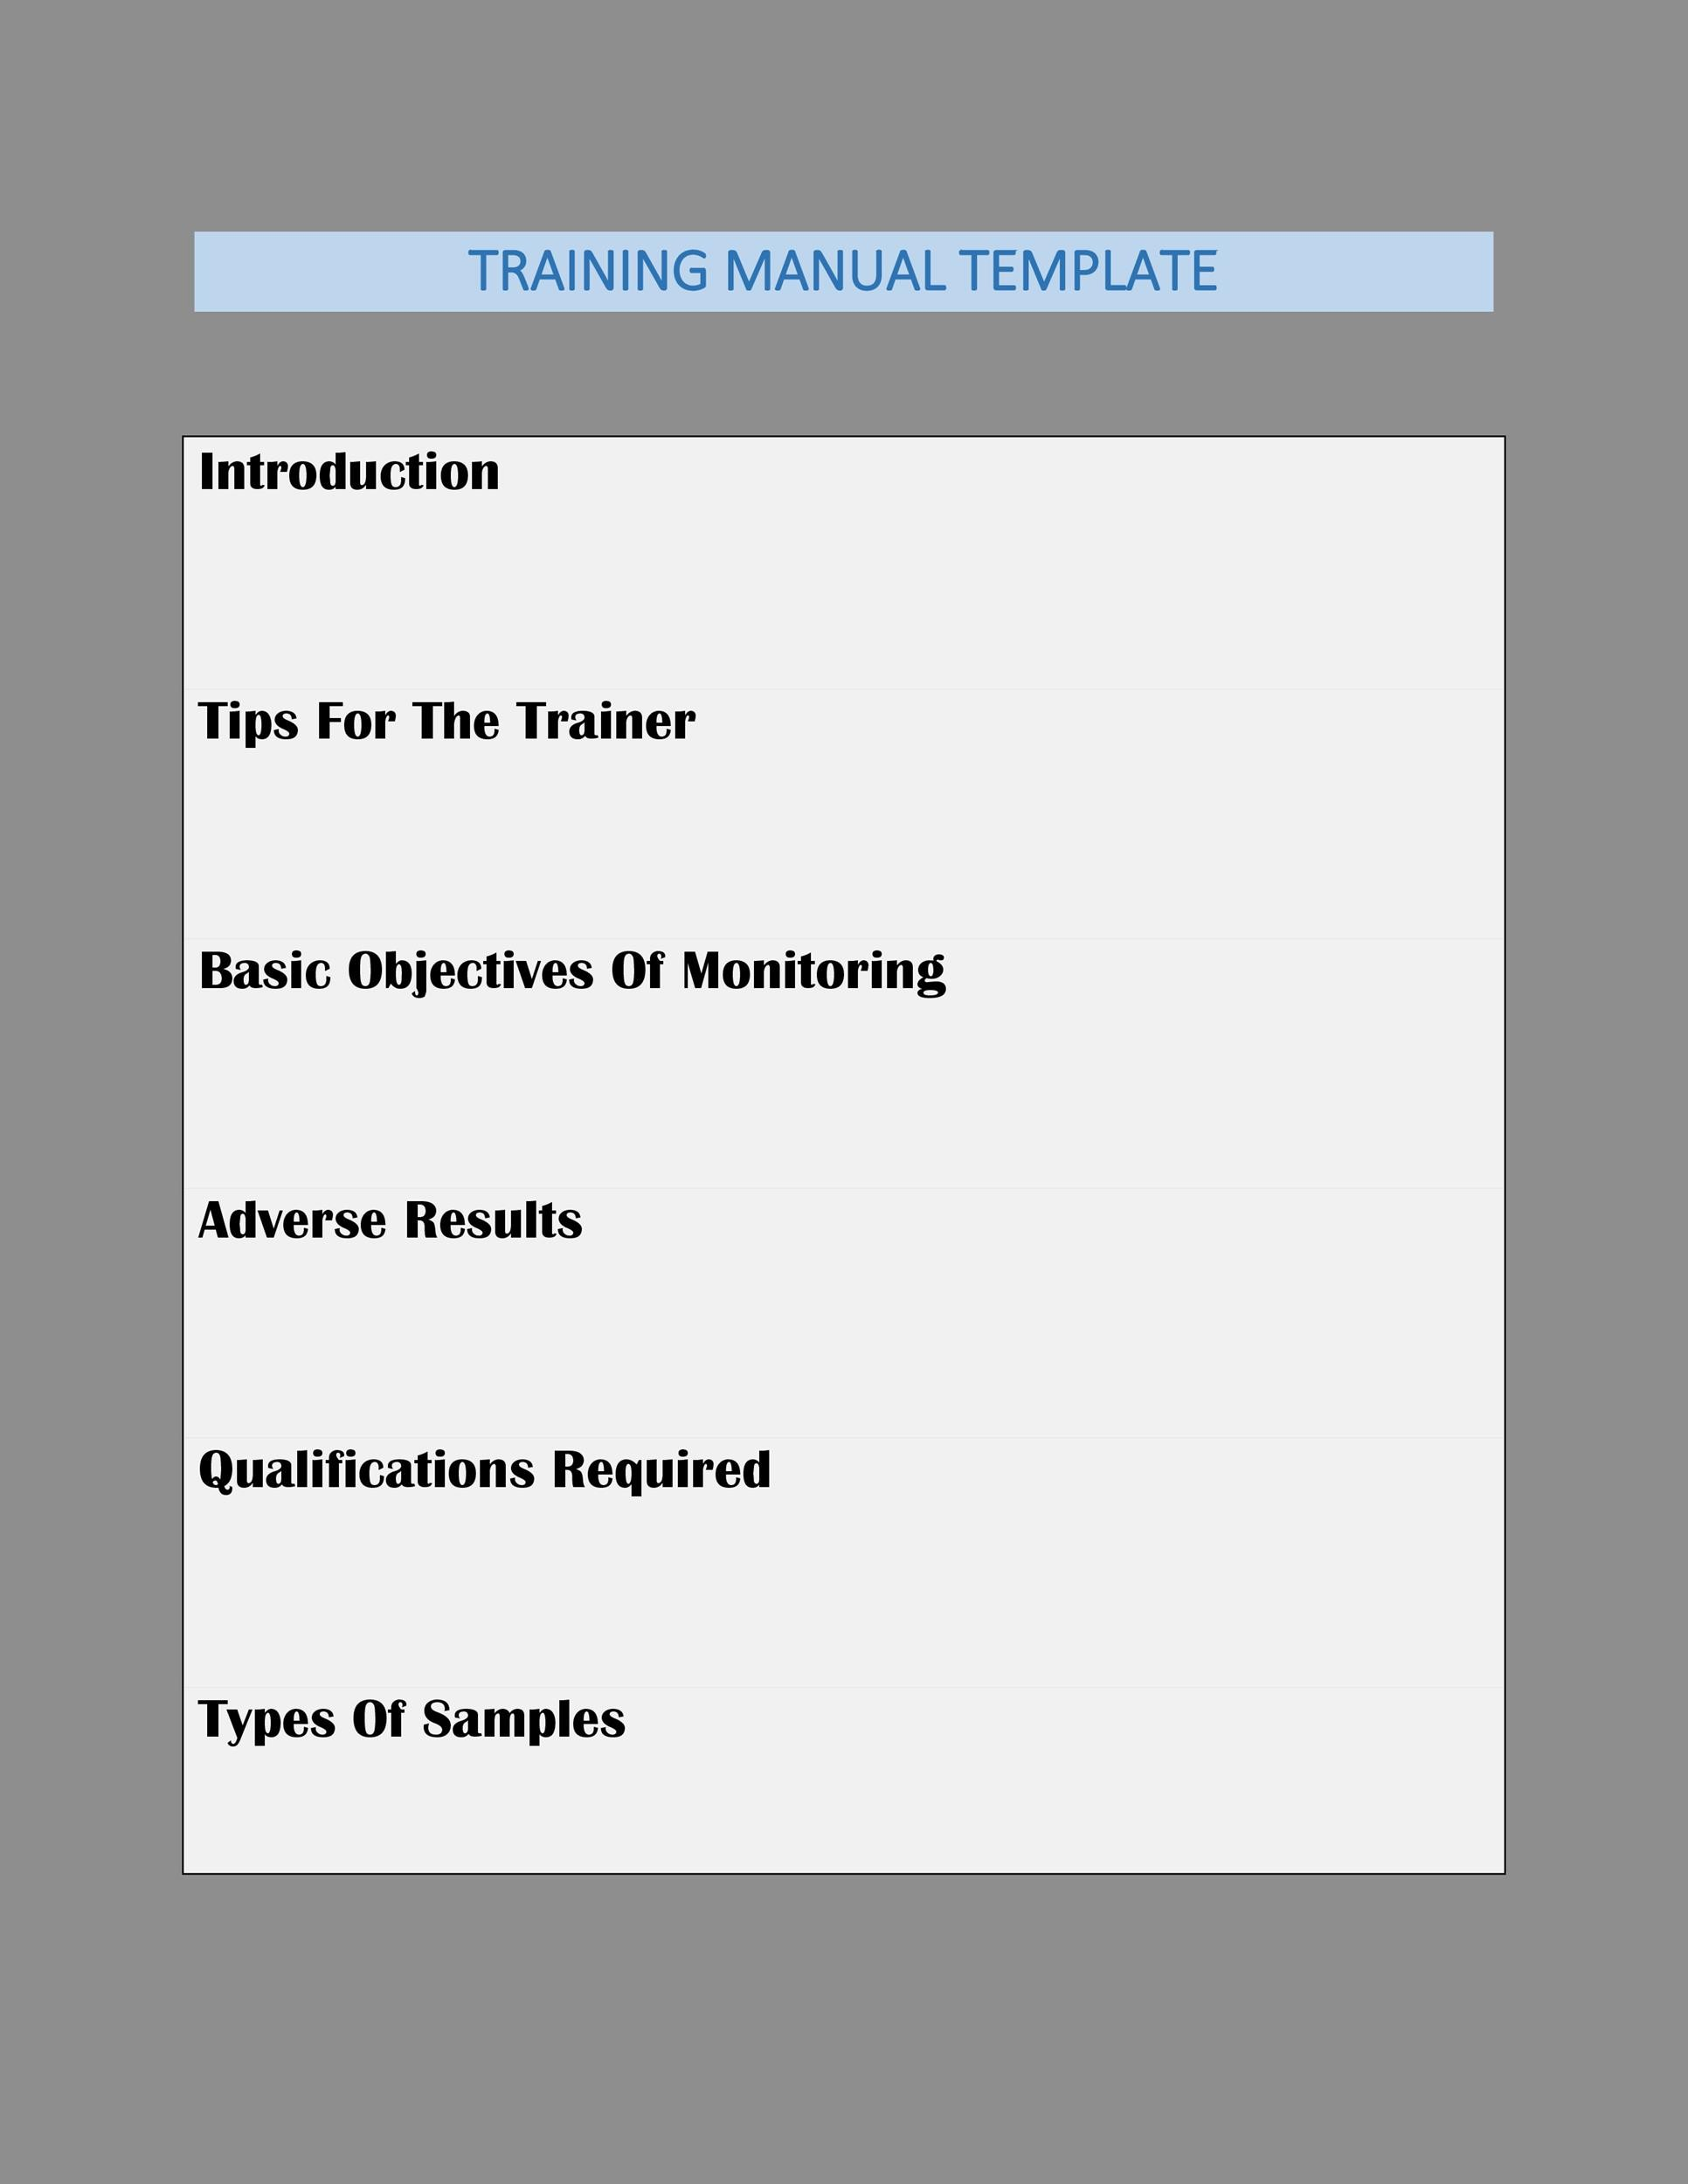 Training Manual - 40+ Free Templates  Examples in MS Word - product manual template